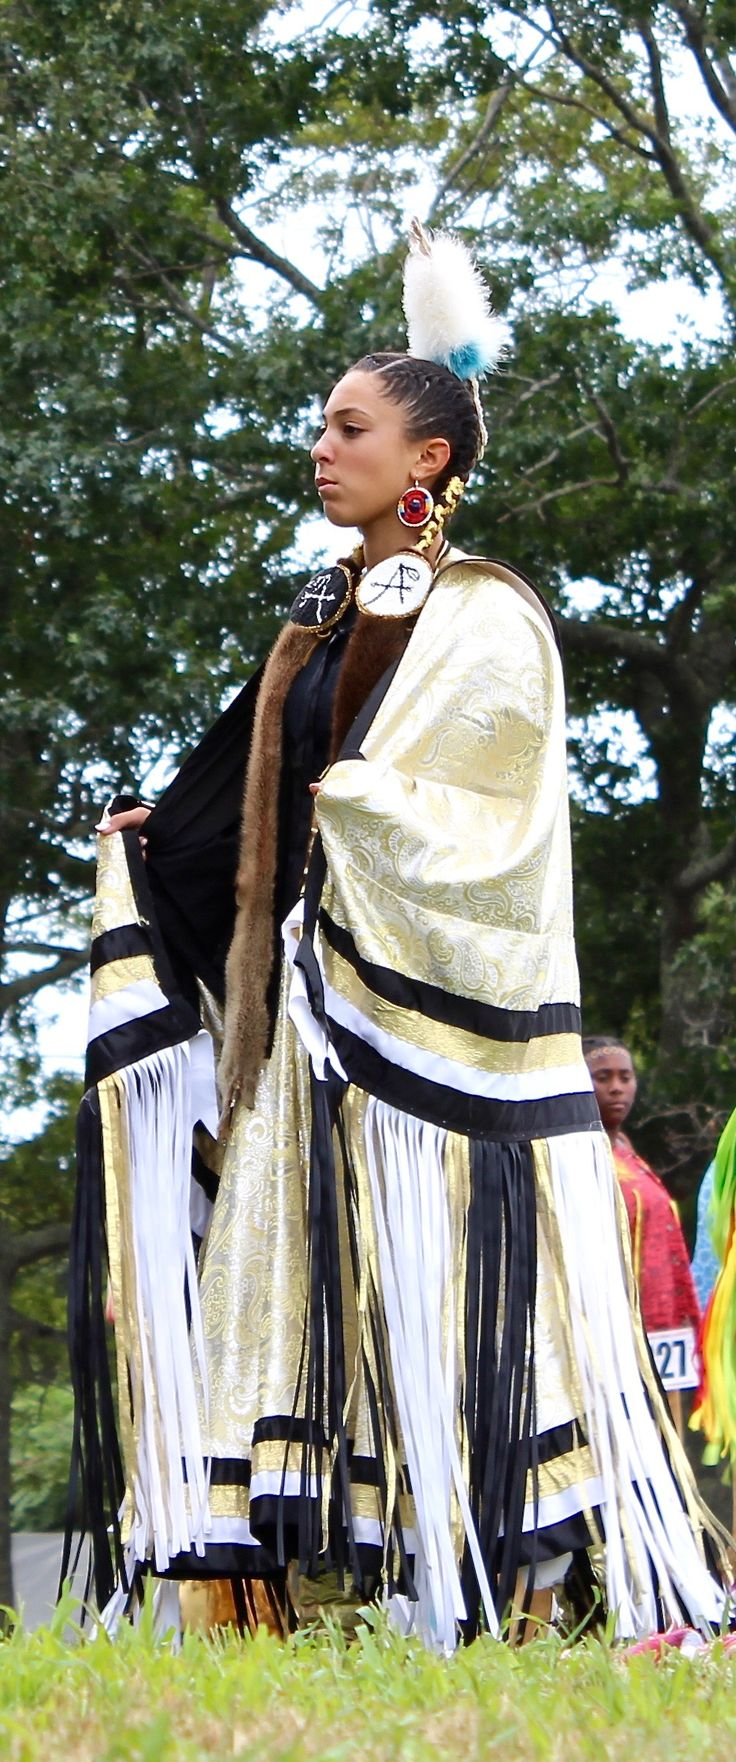 Shinnecock Powwow 2016 , Shinnecock Indian Reservation Pow Wow Grounds, Southampton, L.I. N.Y.: Photo by Linda S Geiger © 2016 10m